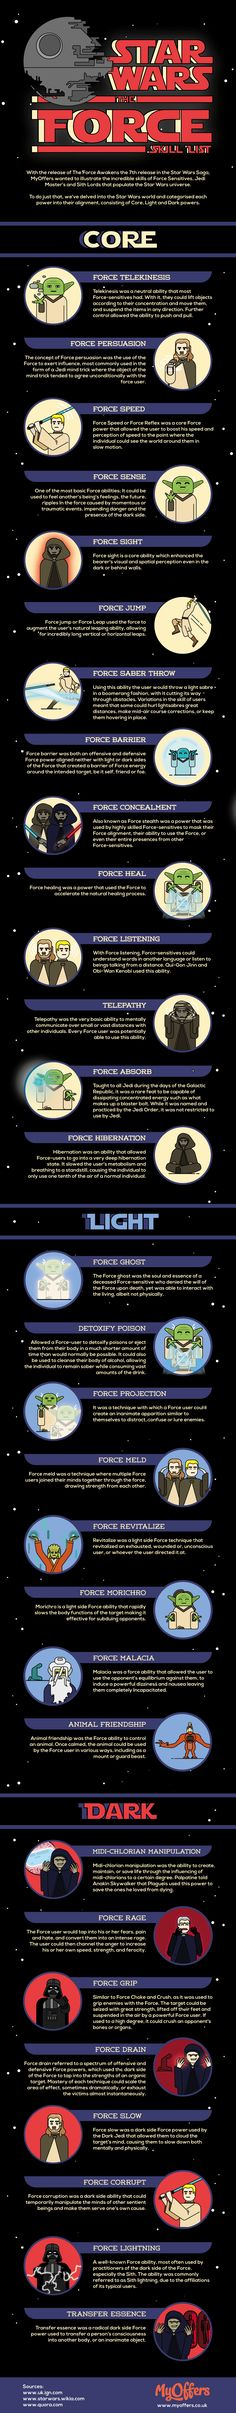 Star Wars: The Force Skill List #Infographic #StarWars